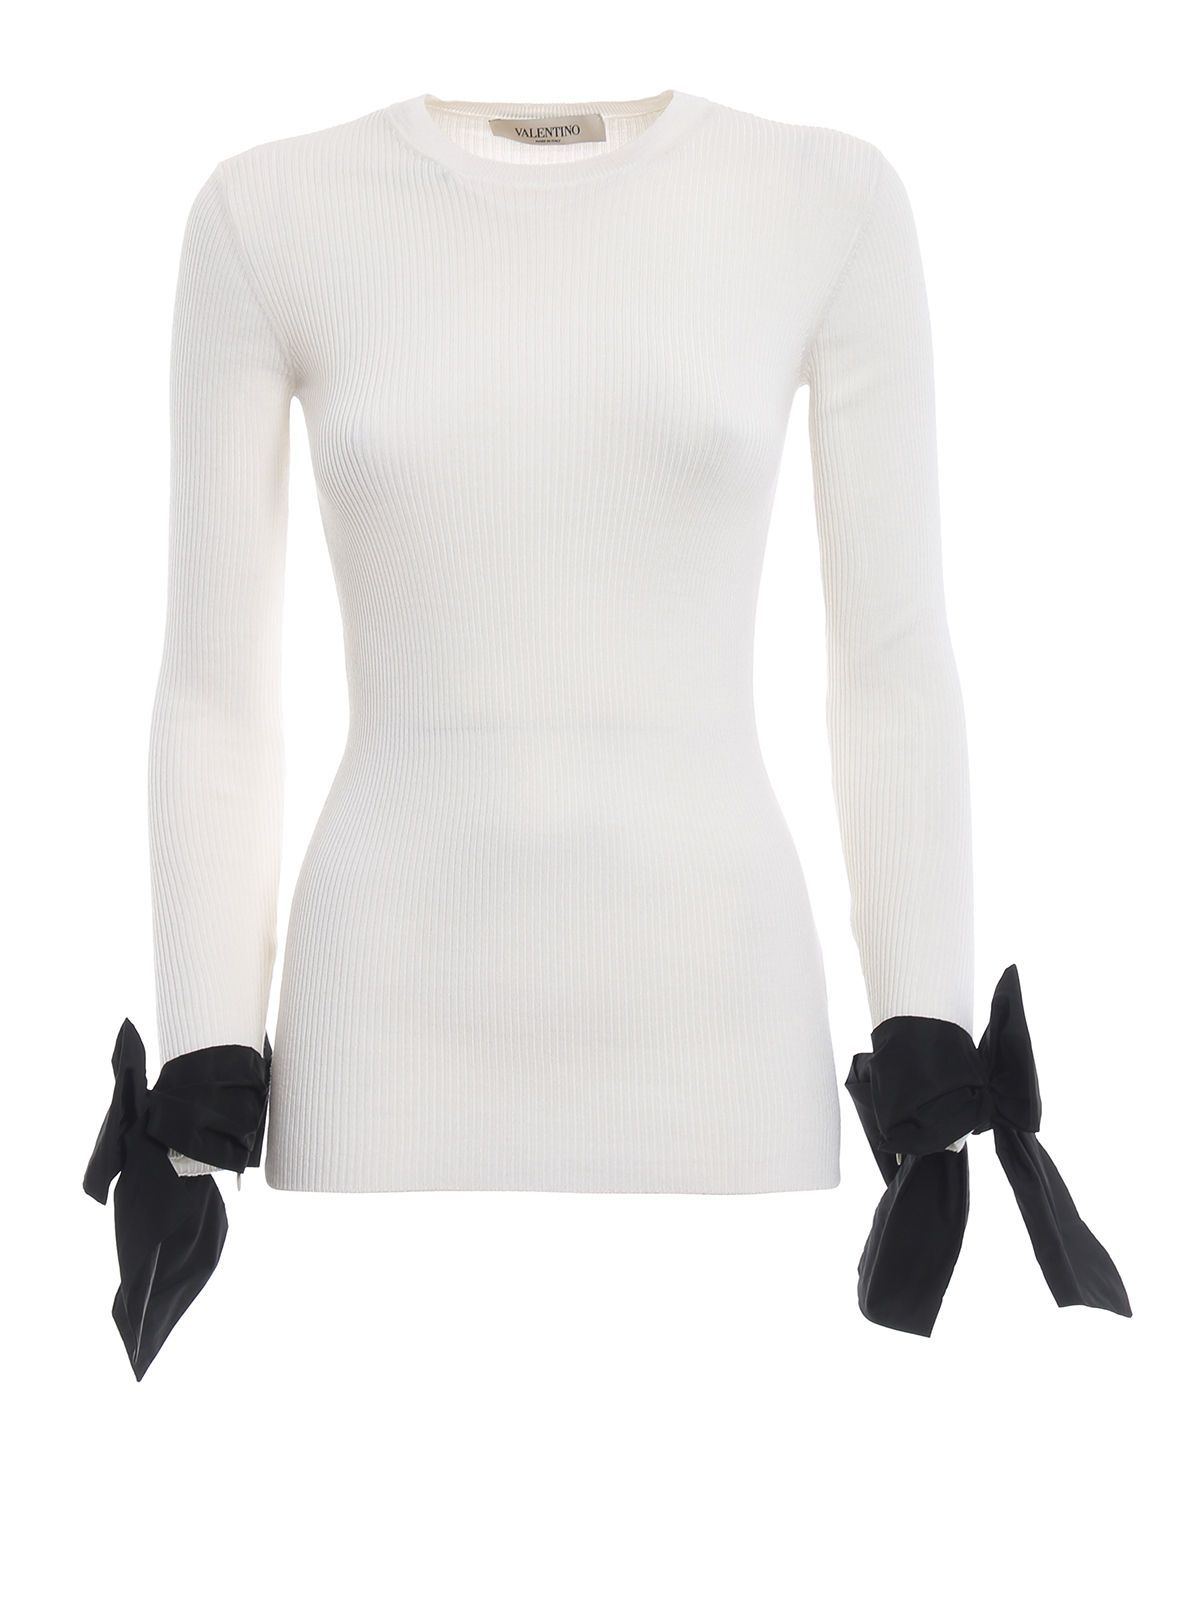 Valentino Tied Cuffs Sweater